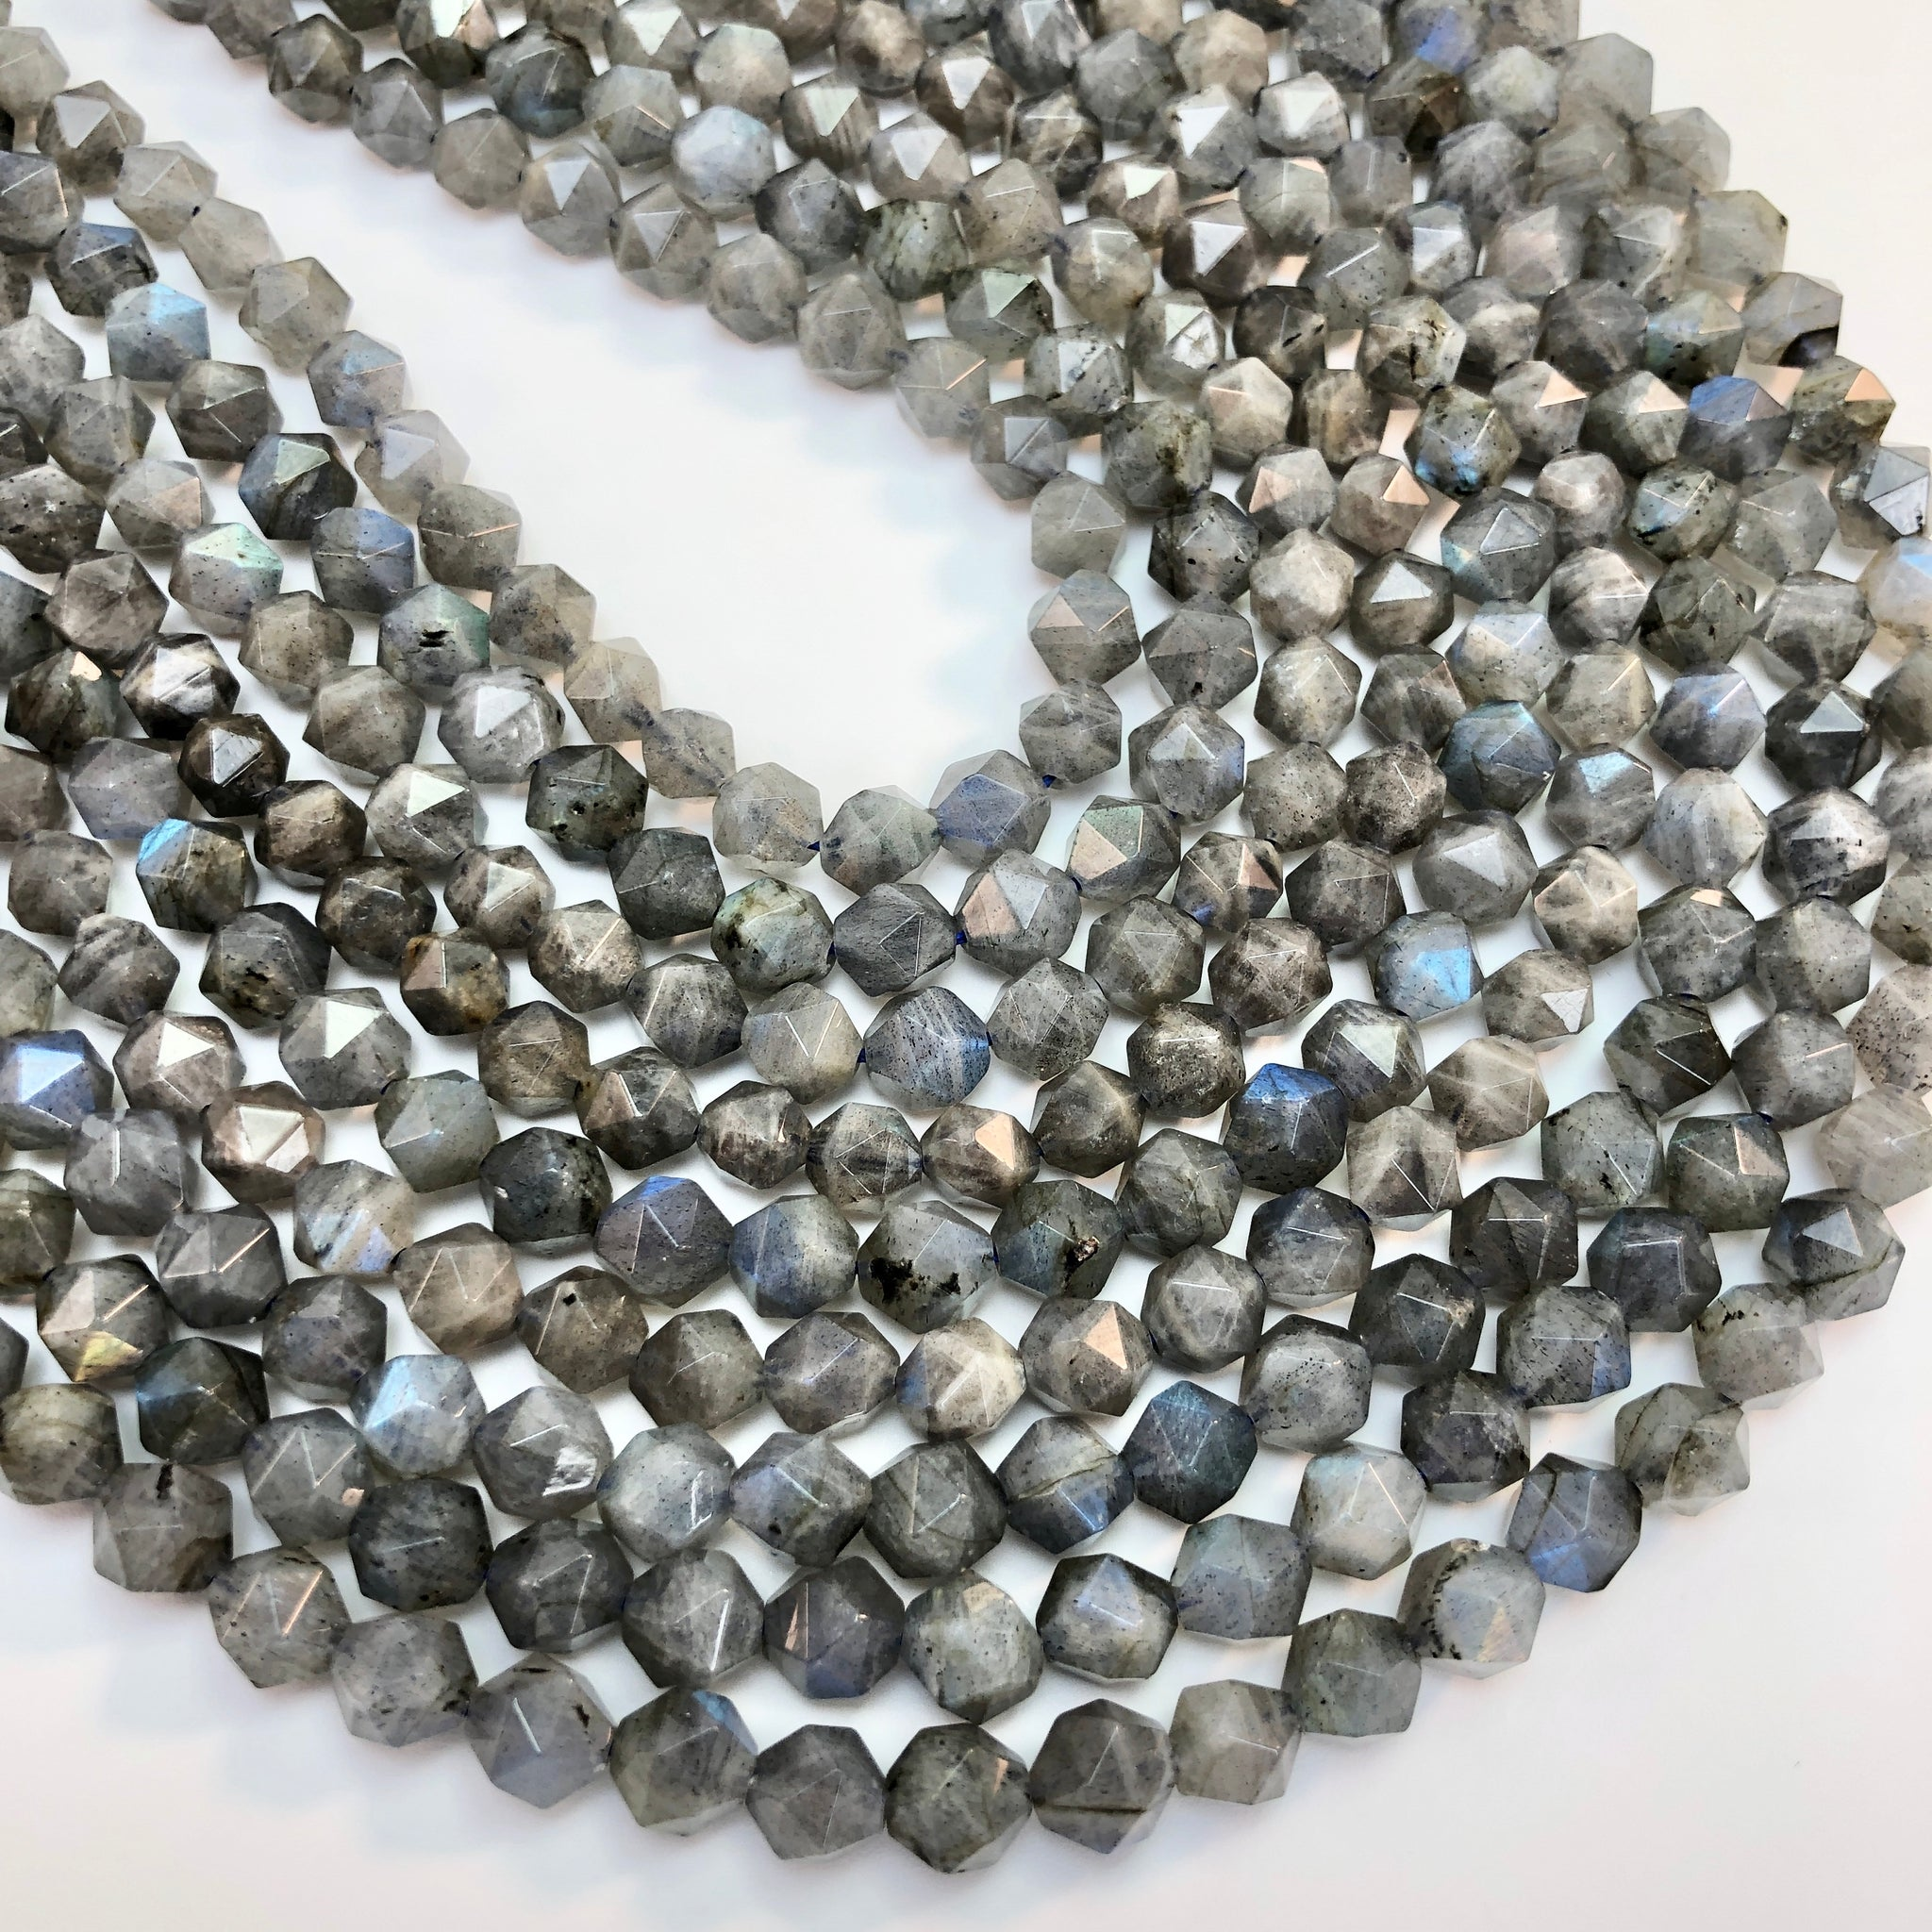 Labradorite - 7-8mm, Diamond cut, faceted